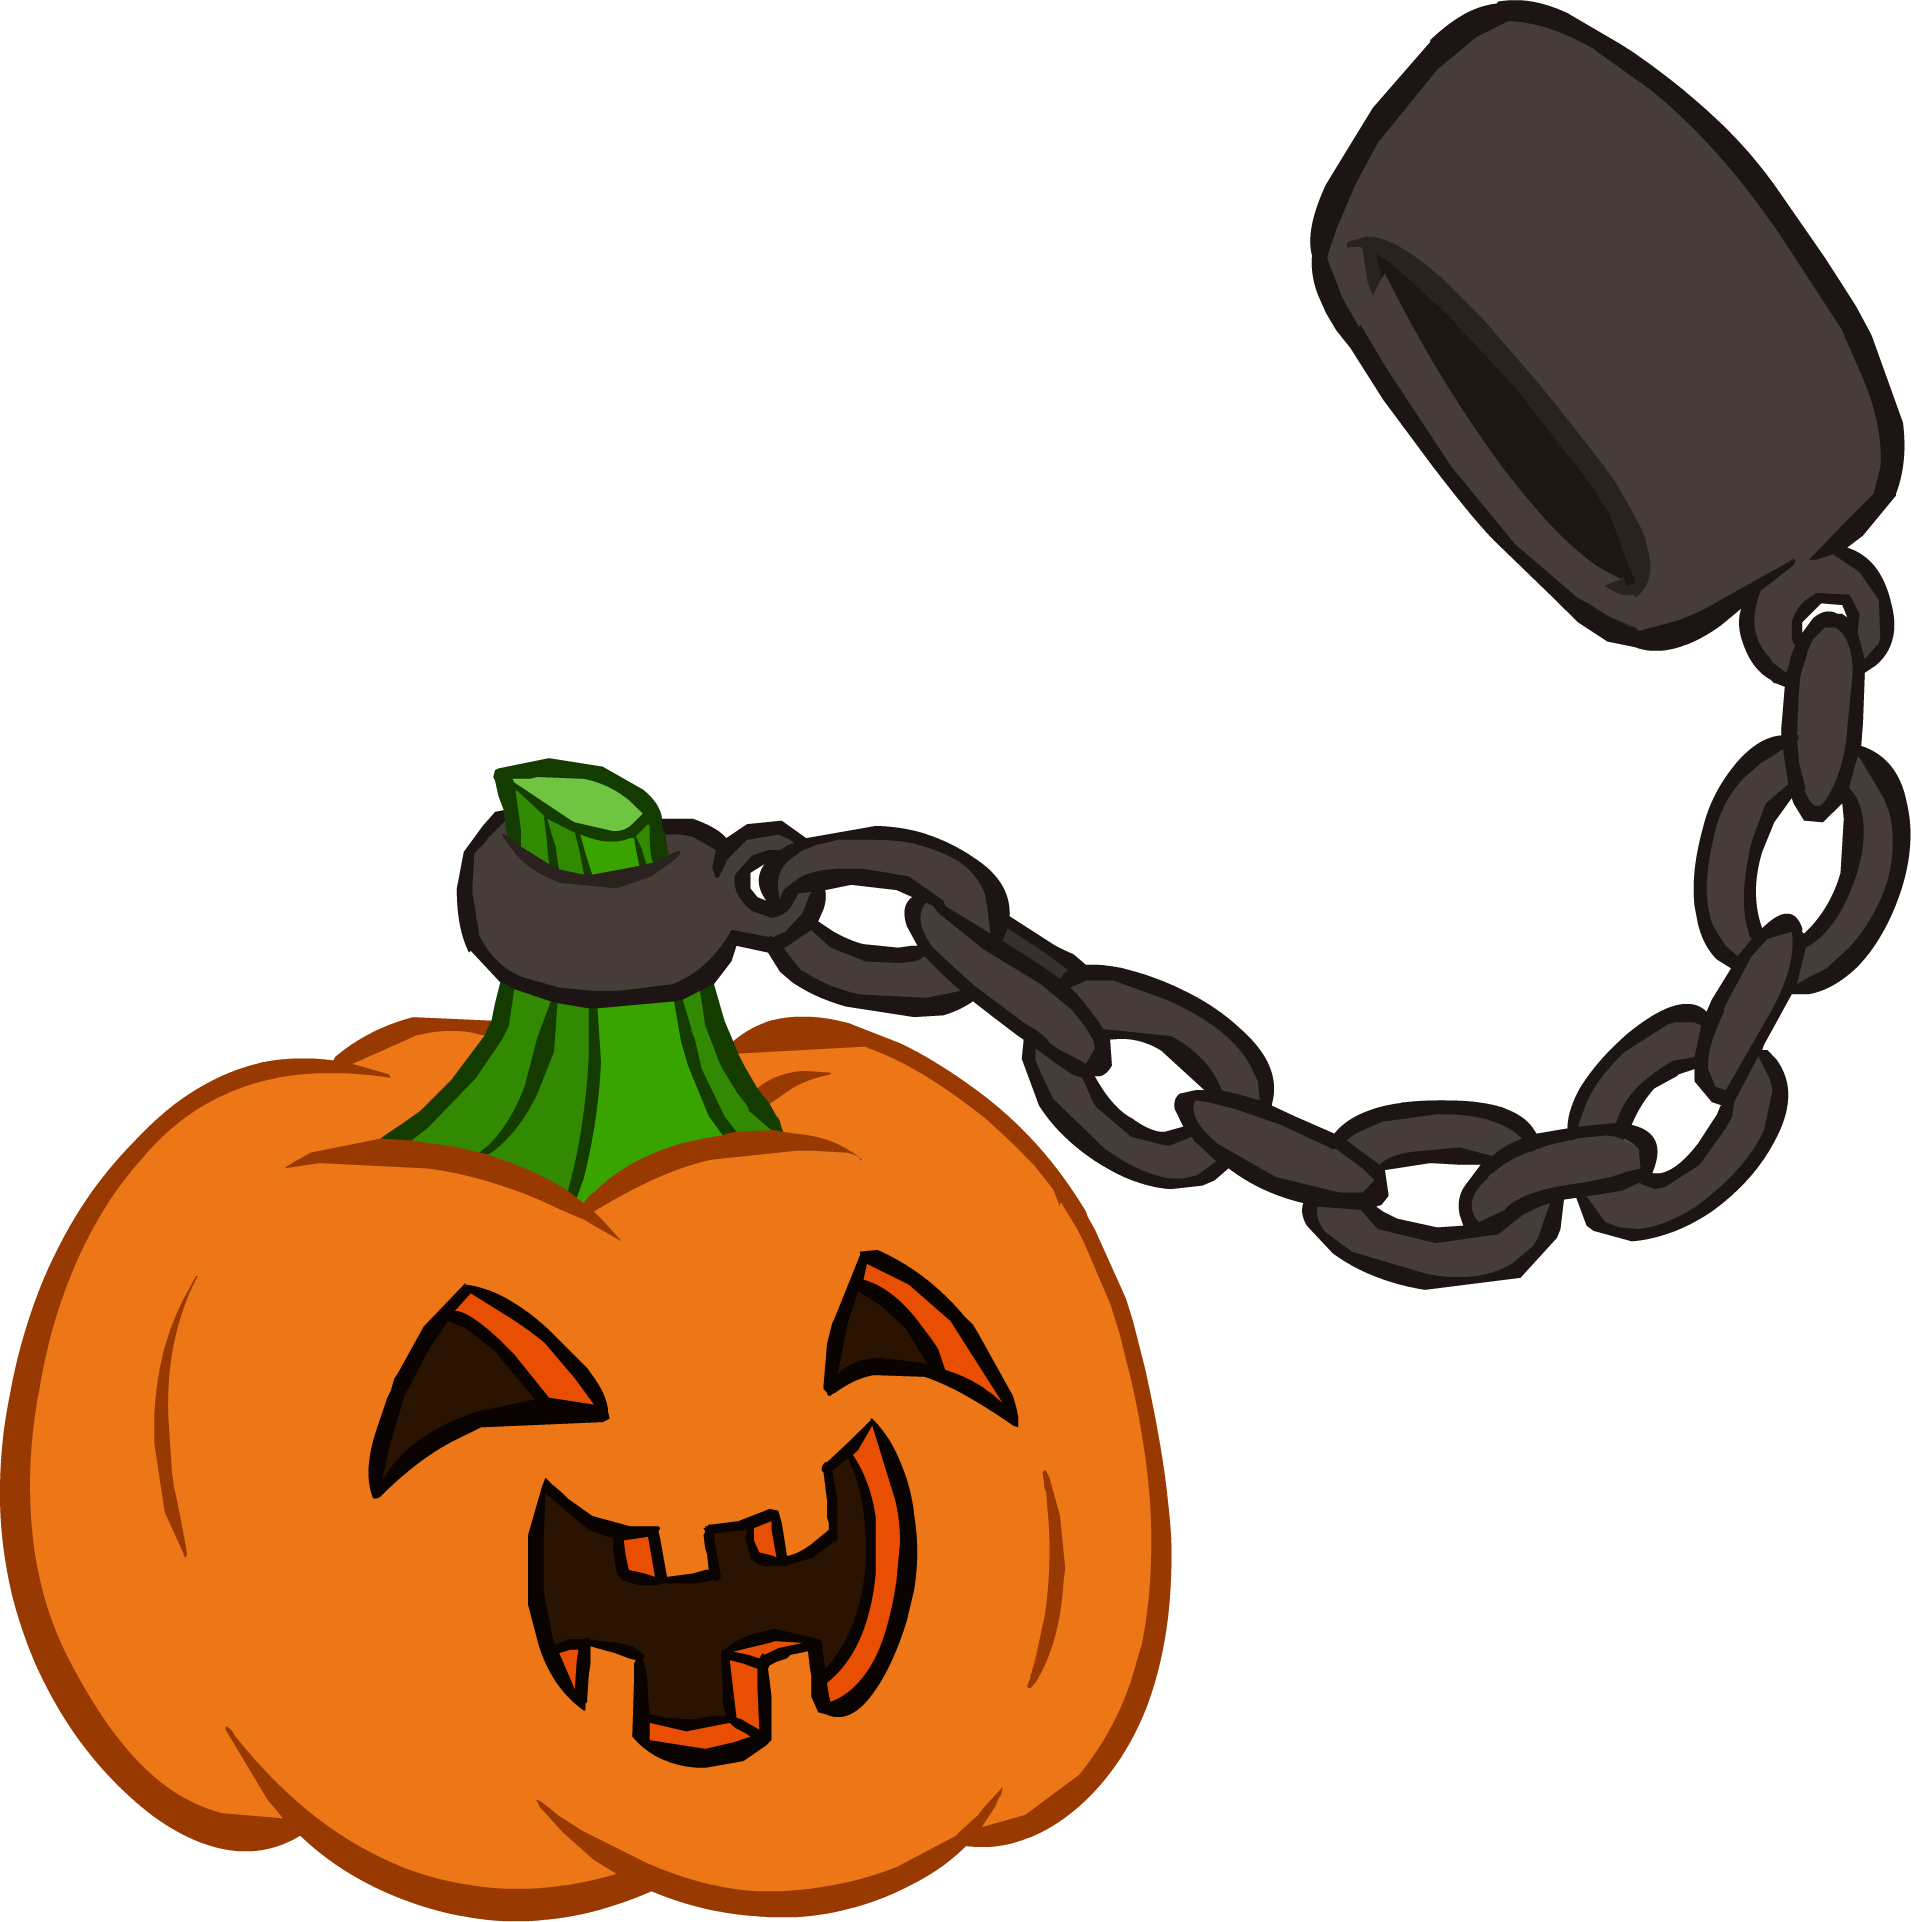 Halloween pumpkin clipart in green screen clip transparent Halloween Party 2014 interface | Club Penguin Wiki | FANDOM powered ... clip transparent